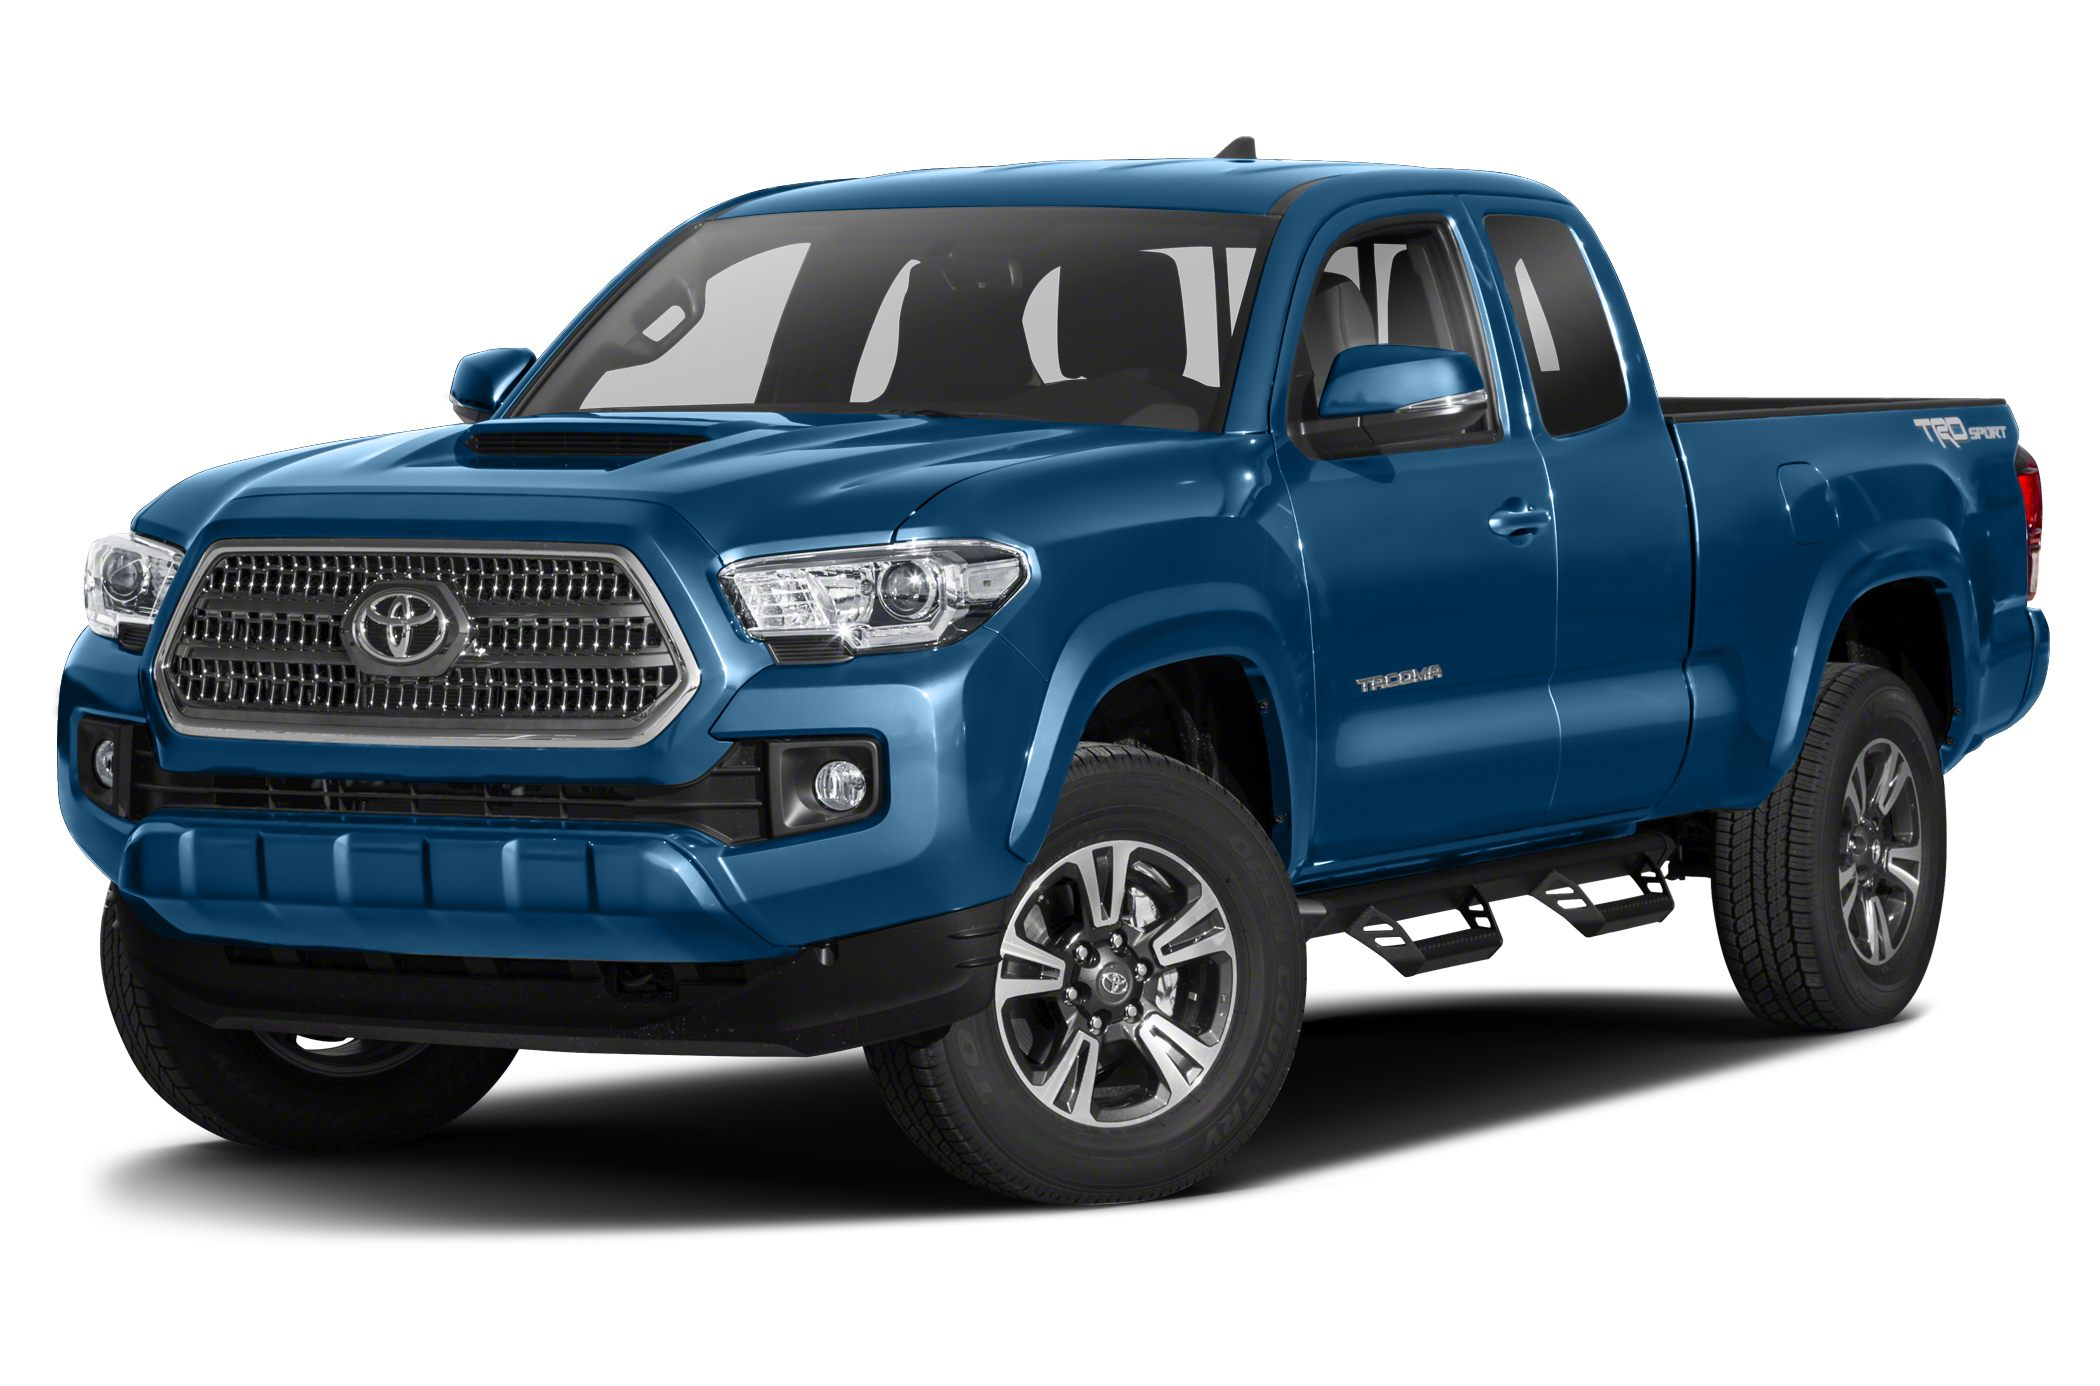 2017 Toyota Tacoma TRD Sport V6 4x4 Access Cab 127.4 in. WB